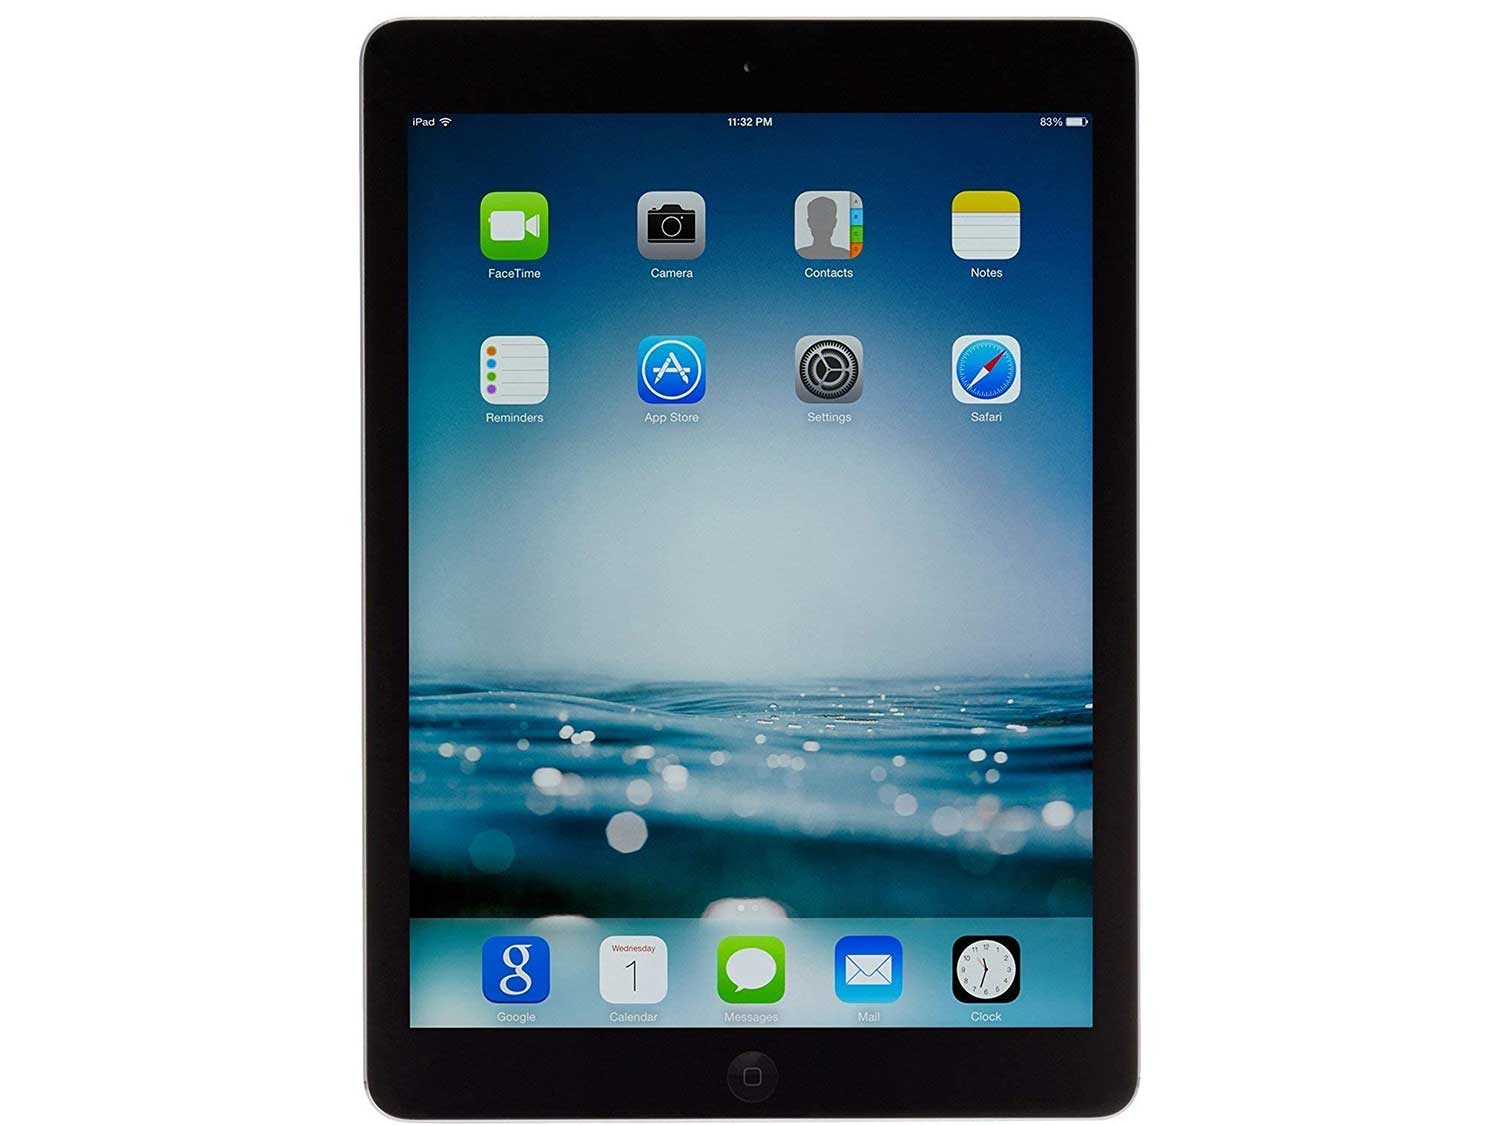 Apple iPad 9.7 inches with WiFi